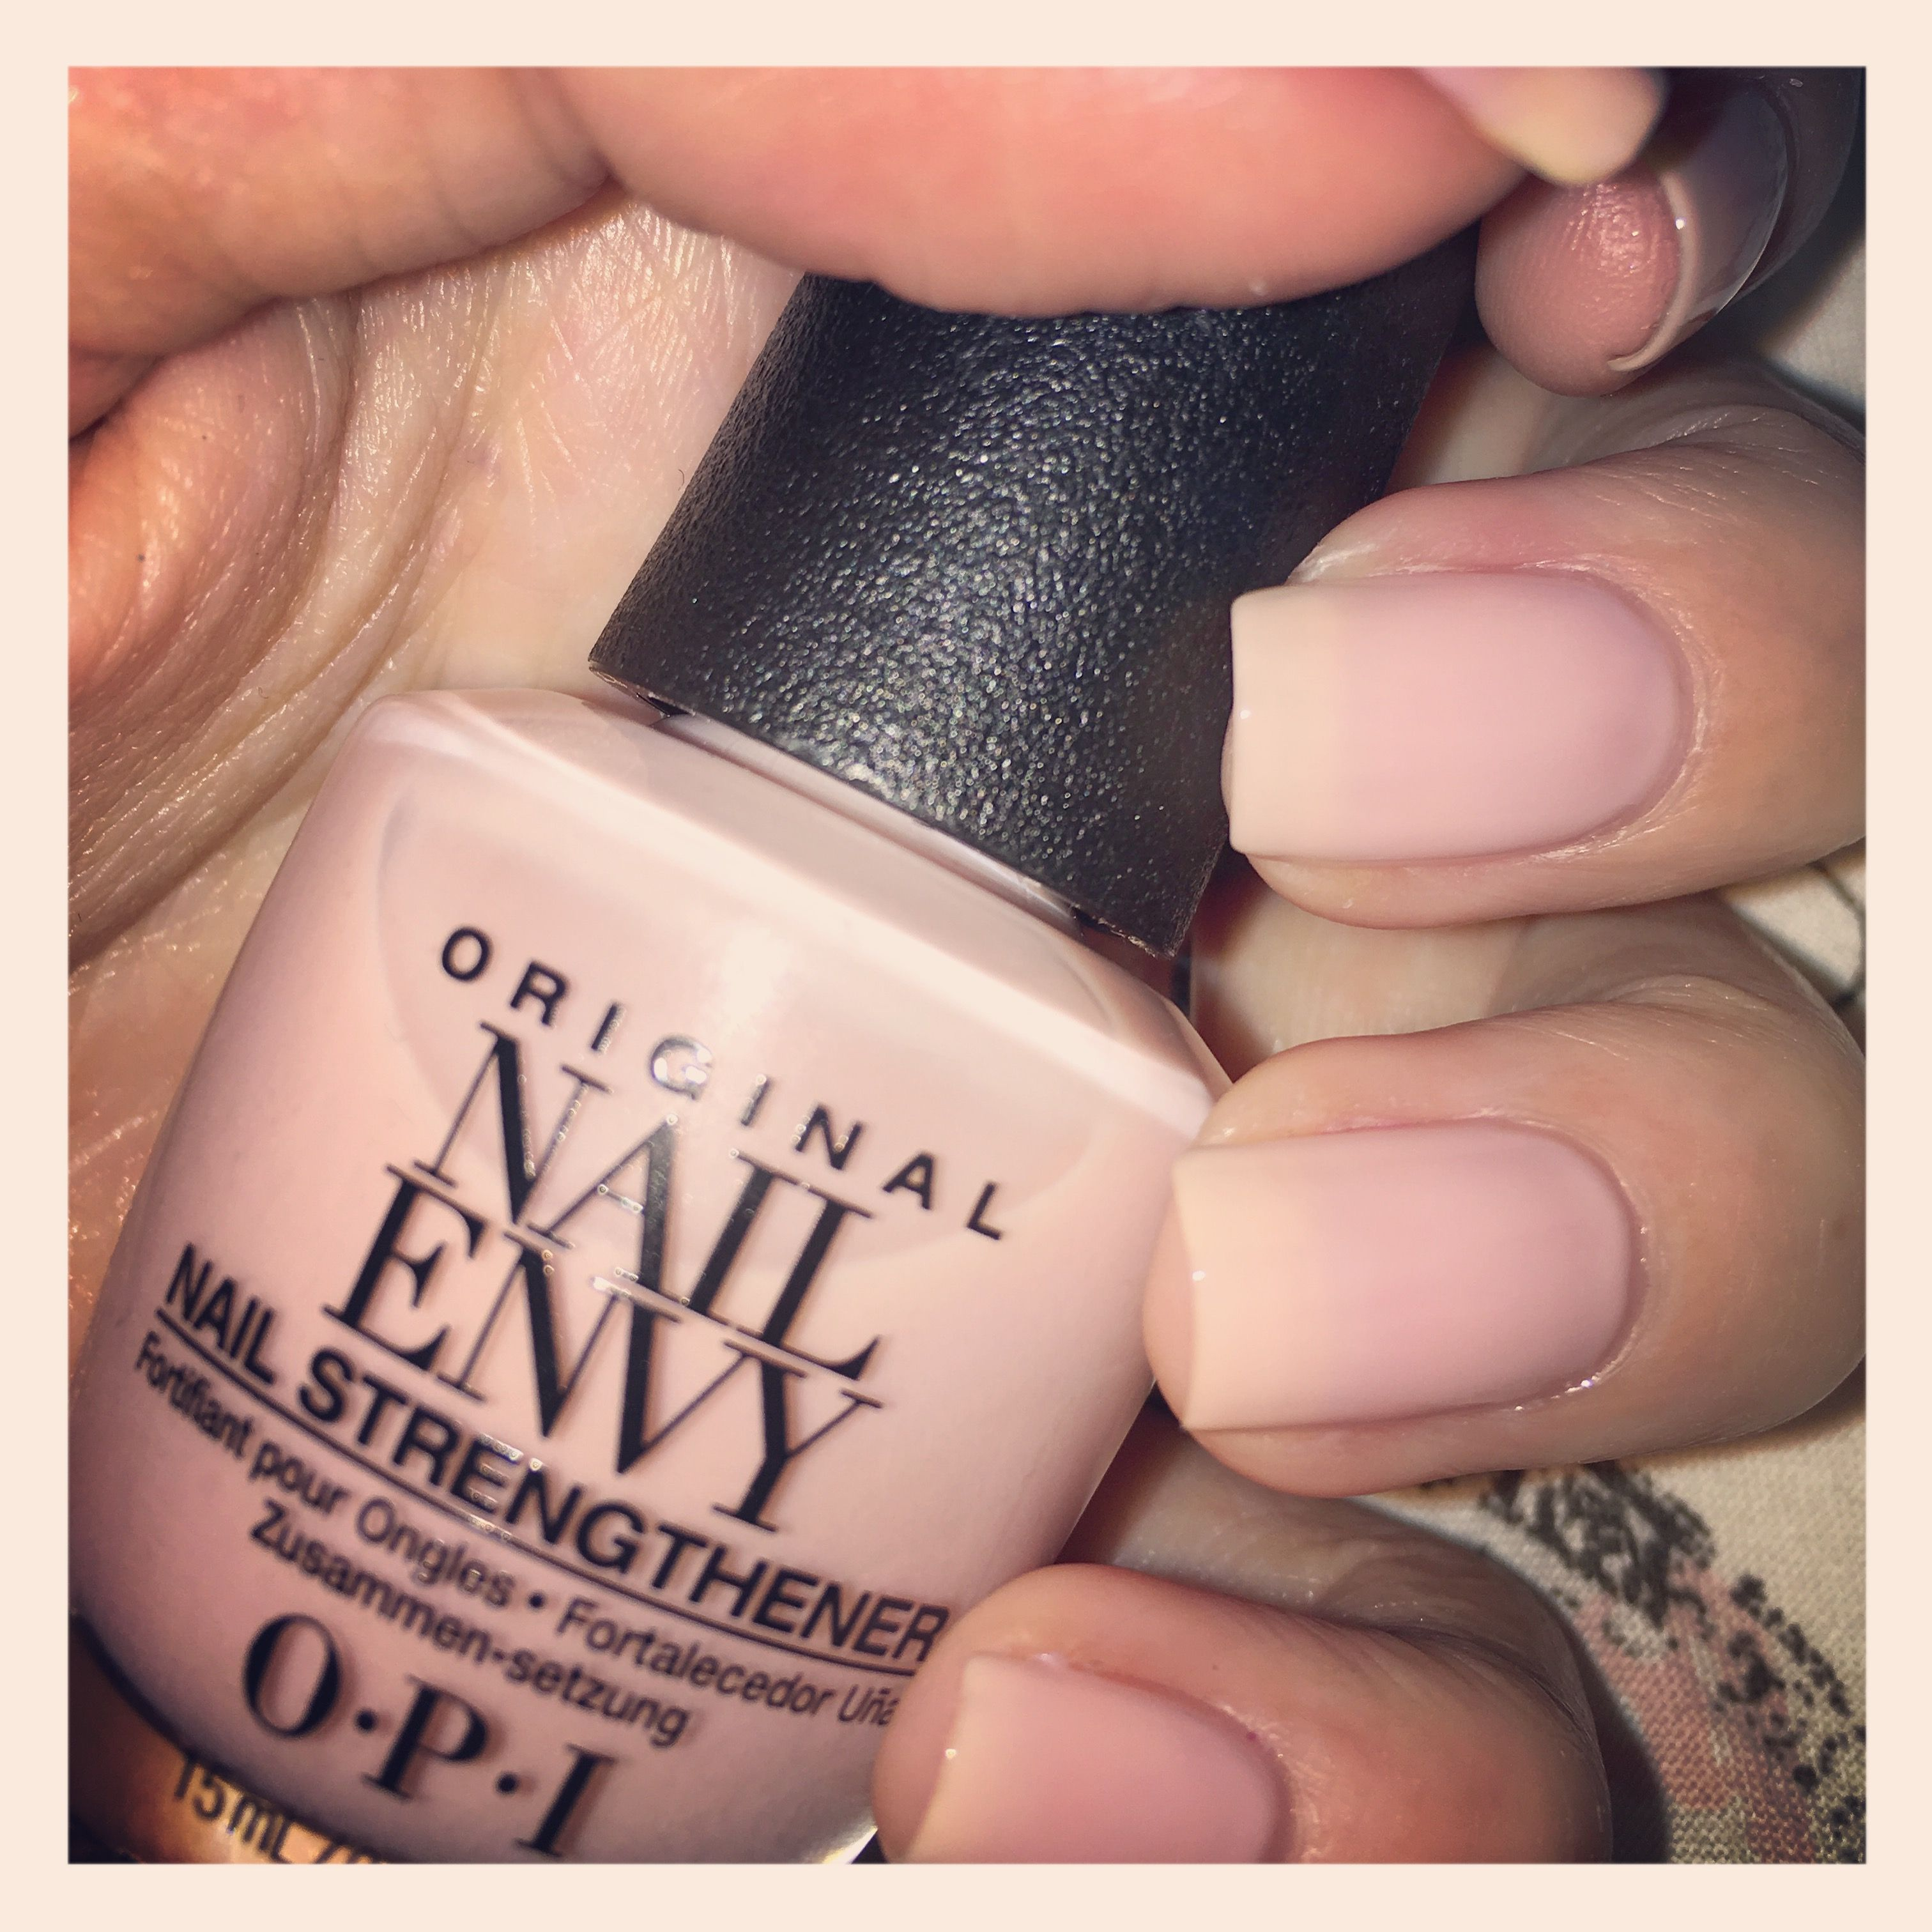 Bubble Bath OPI Nail Envy | My Nails | Pinterest | Opi nail envy ...